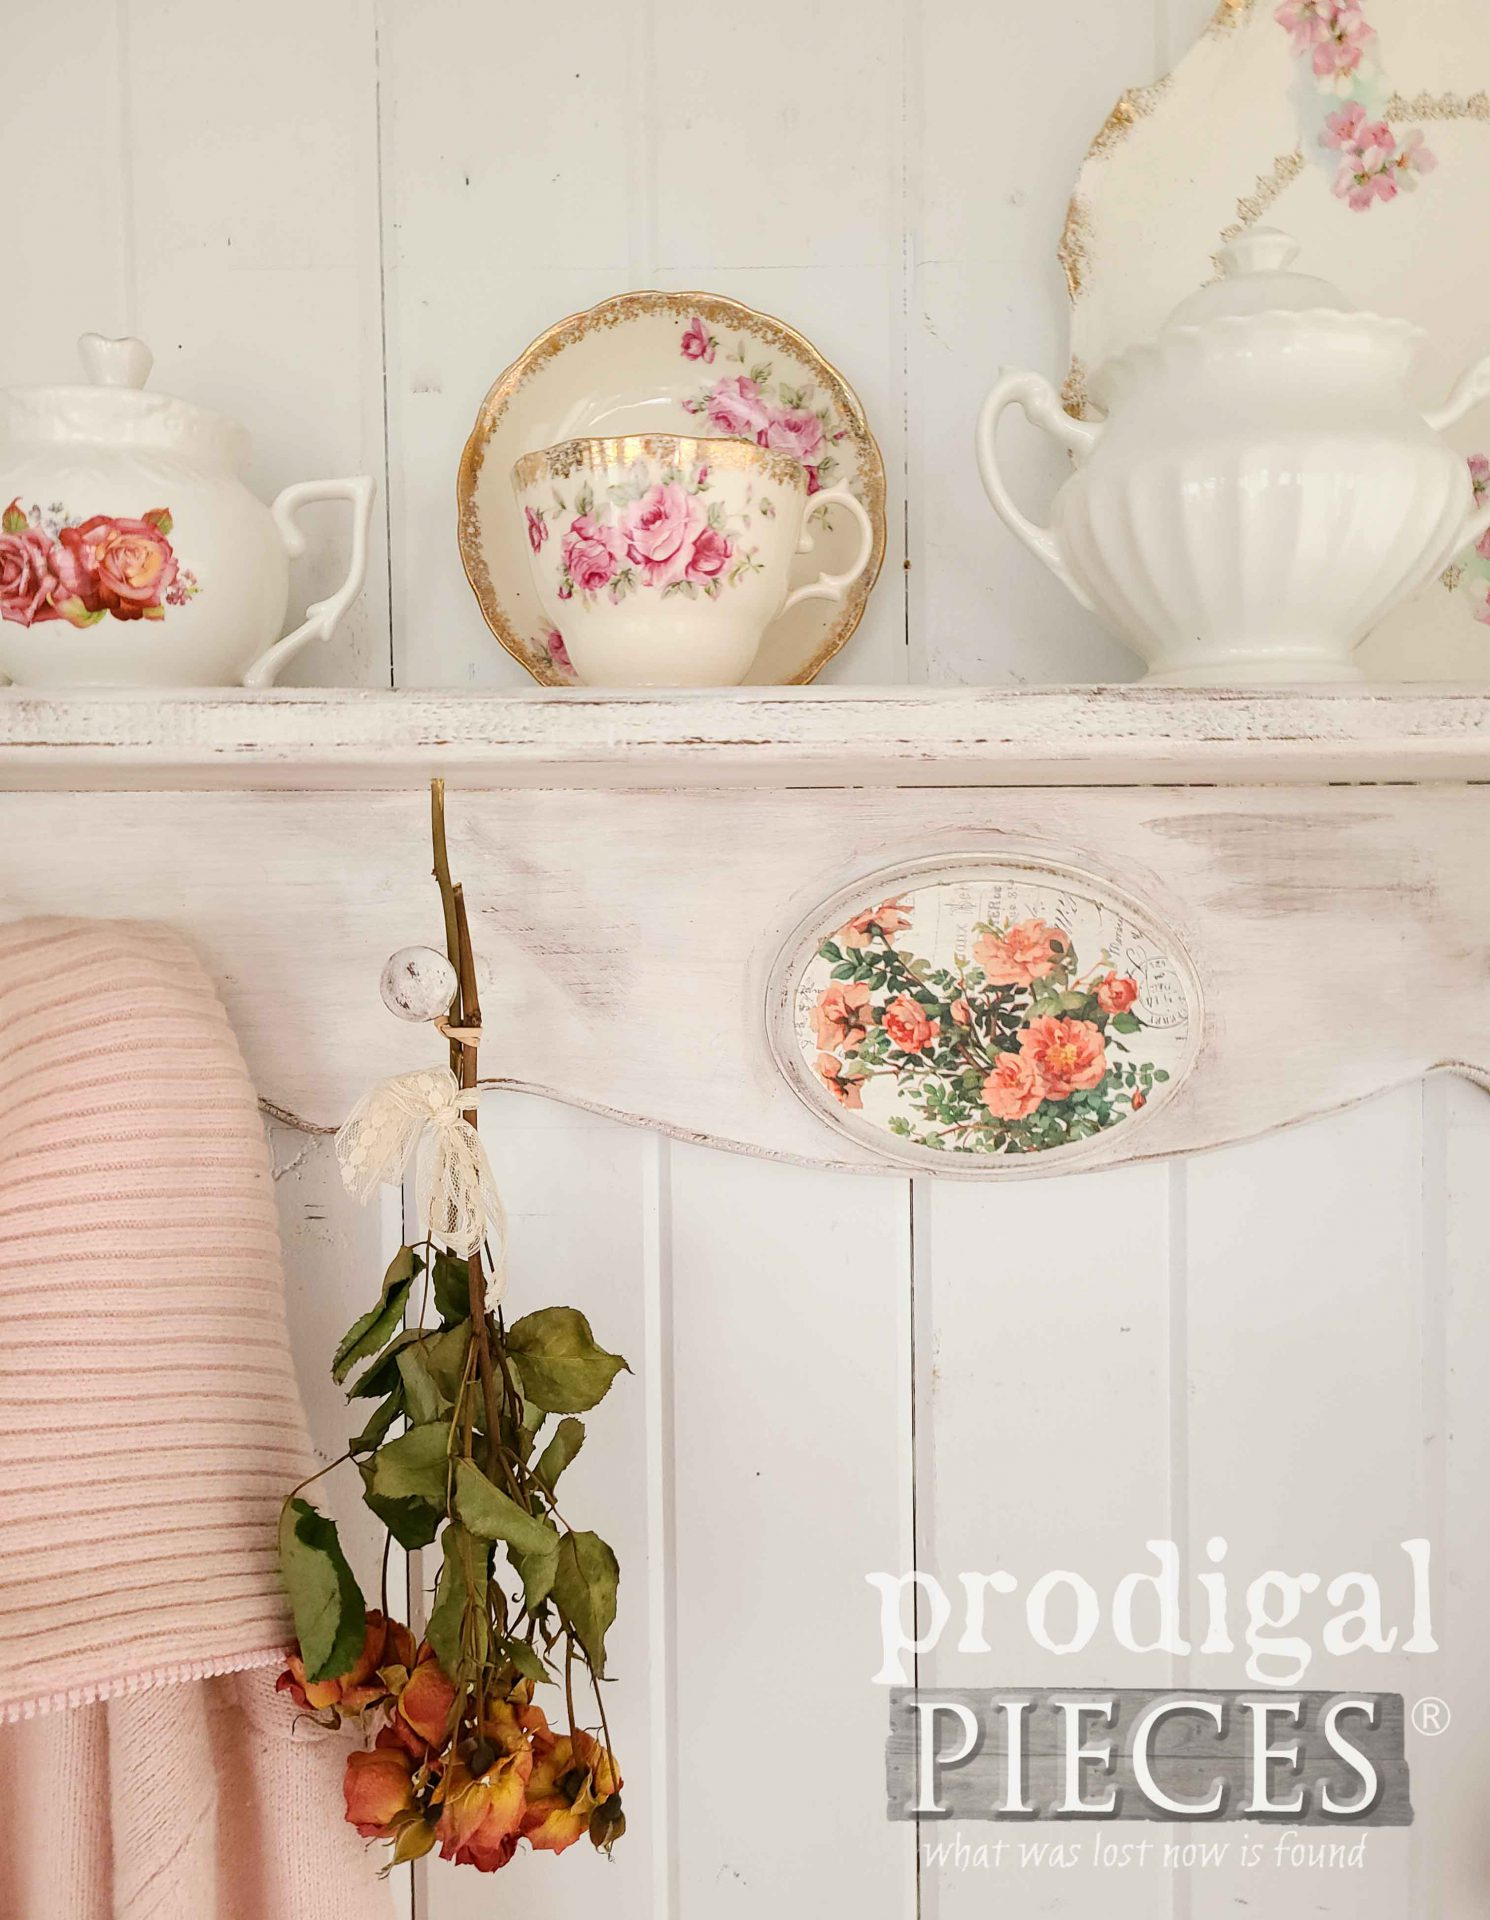 Shabby Chic Rose Decor ~ Thrift Decor Makeovers by Prodigal Pieces | prodigalpieces.com #prodigalpieces #rose #shabbychic #cottage